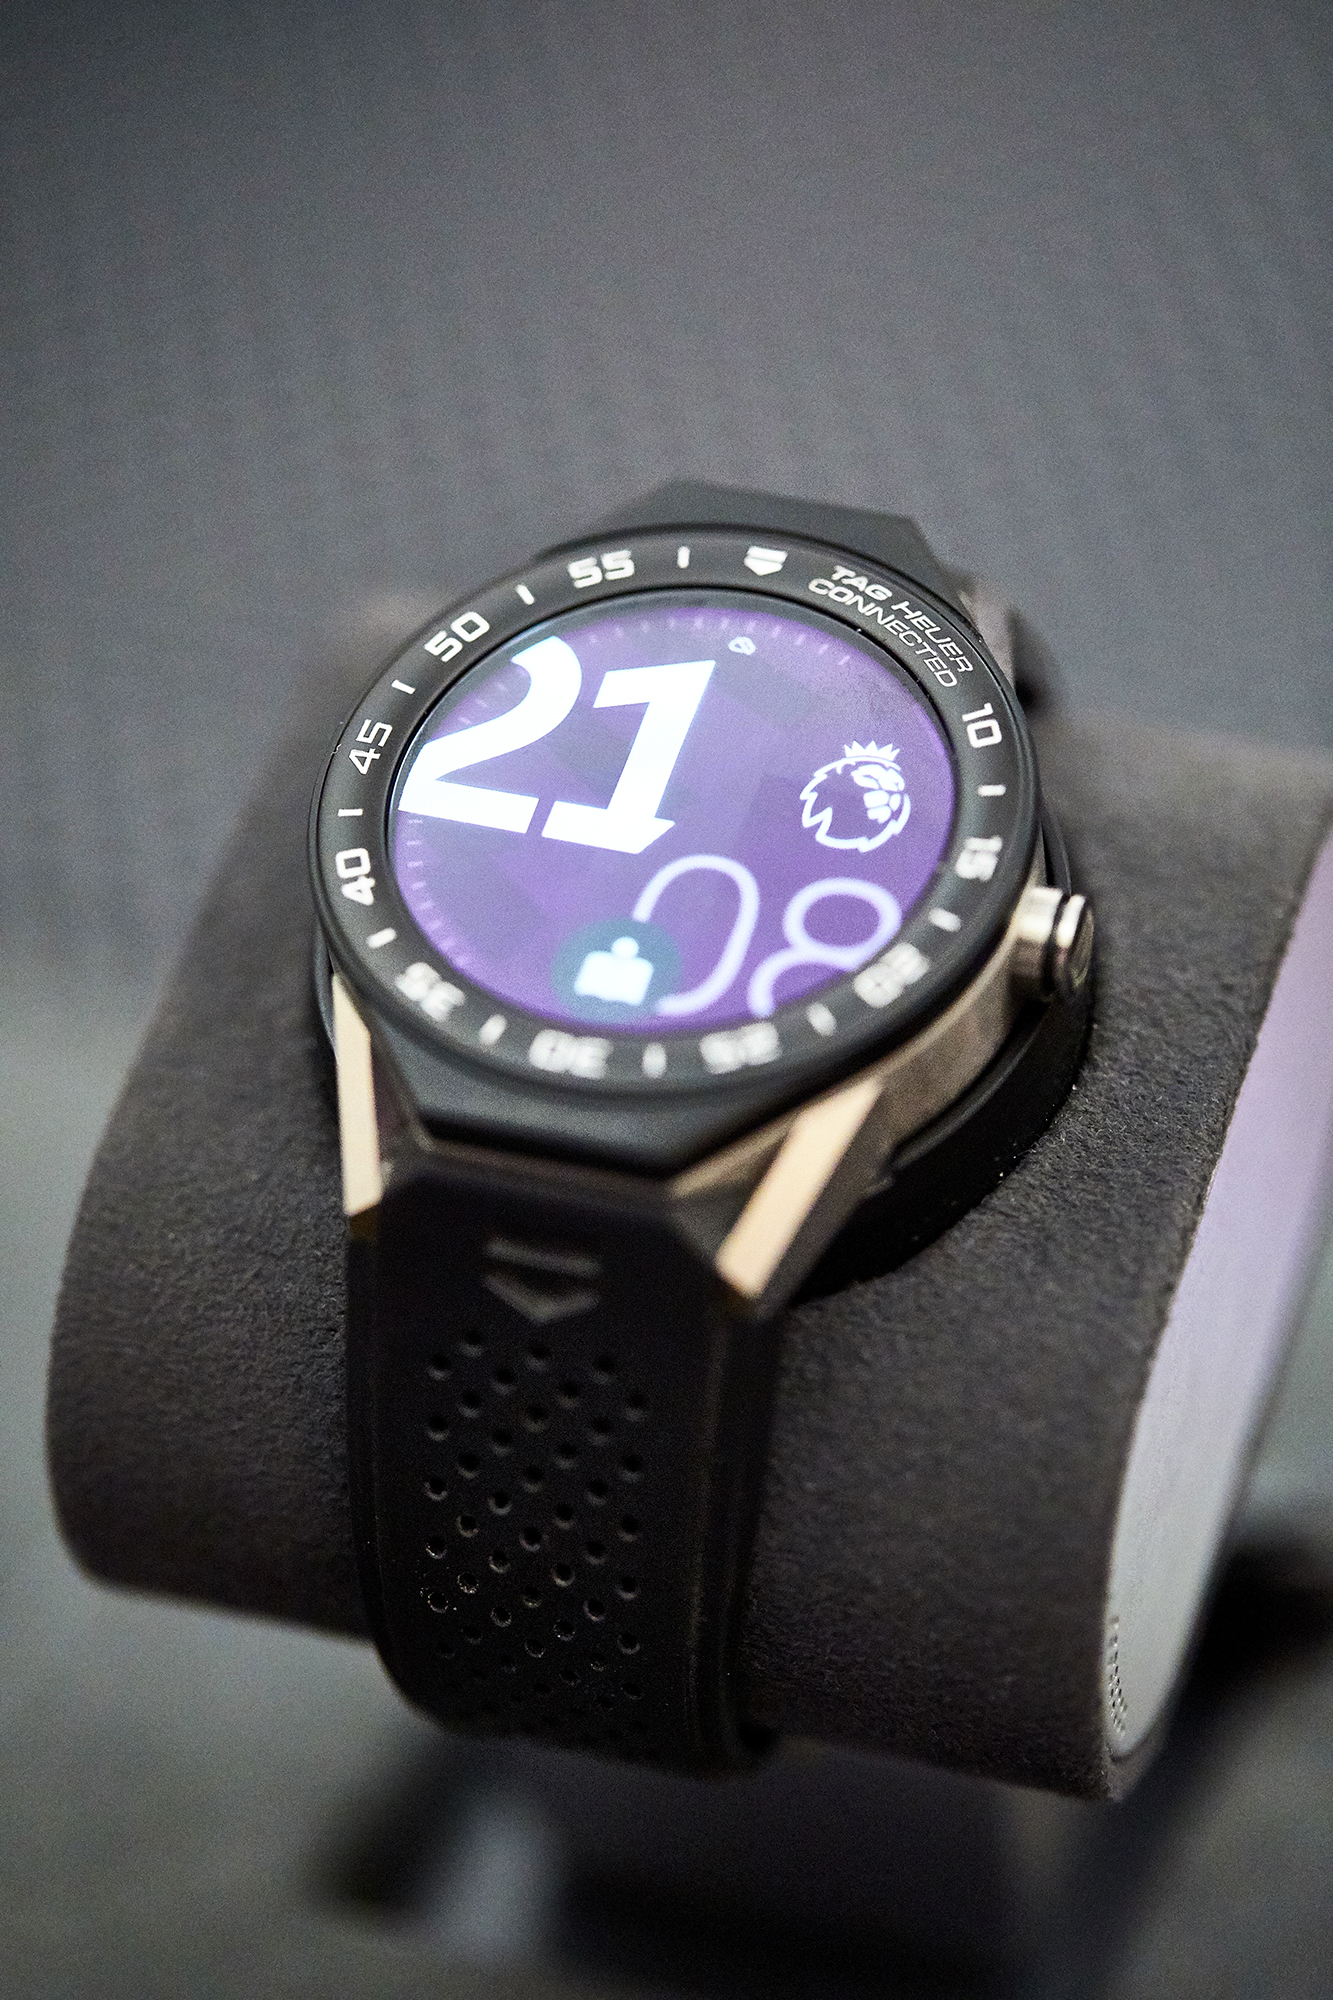 The Tag Heuer Modular smartwatch with Premier League screen